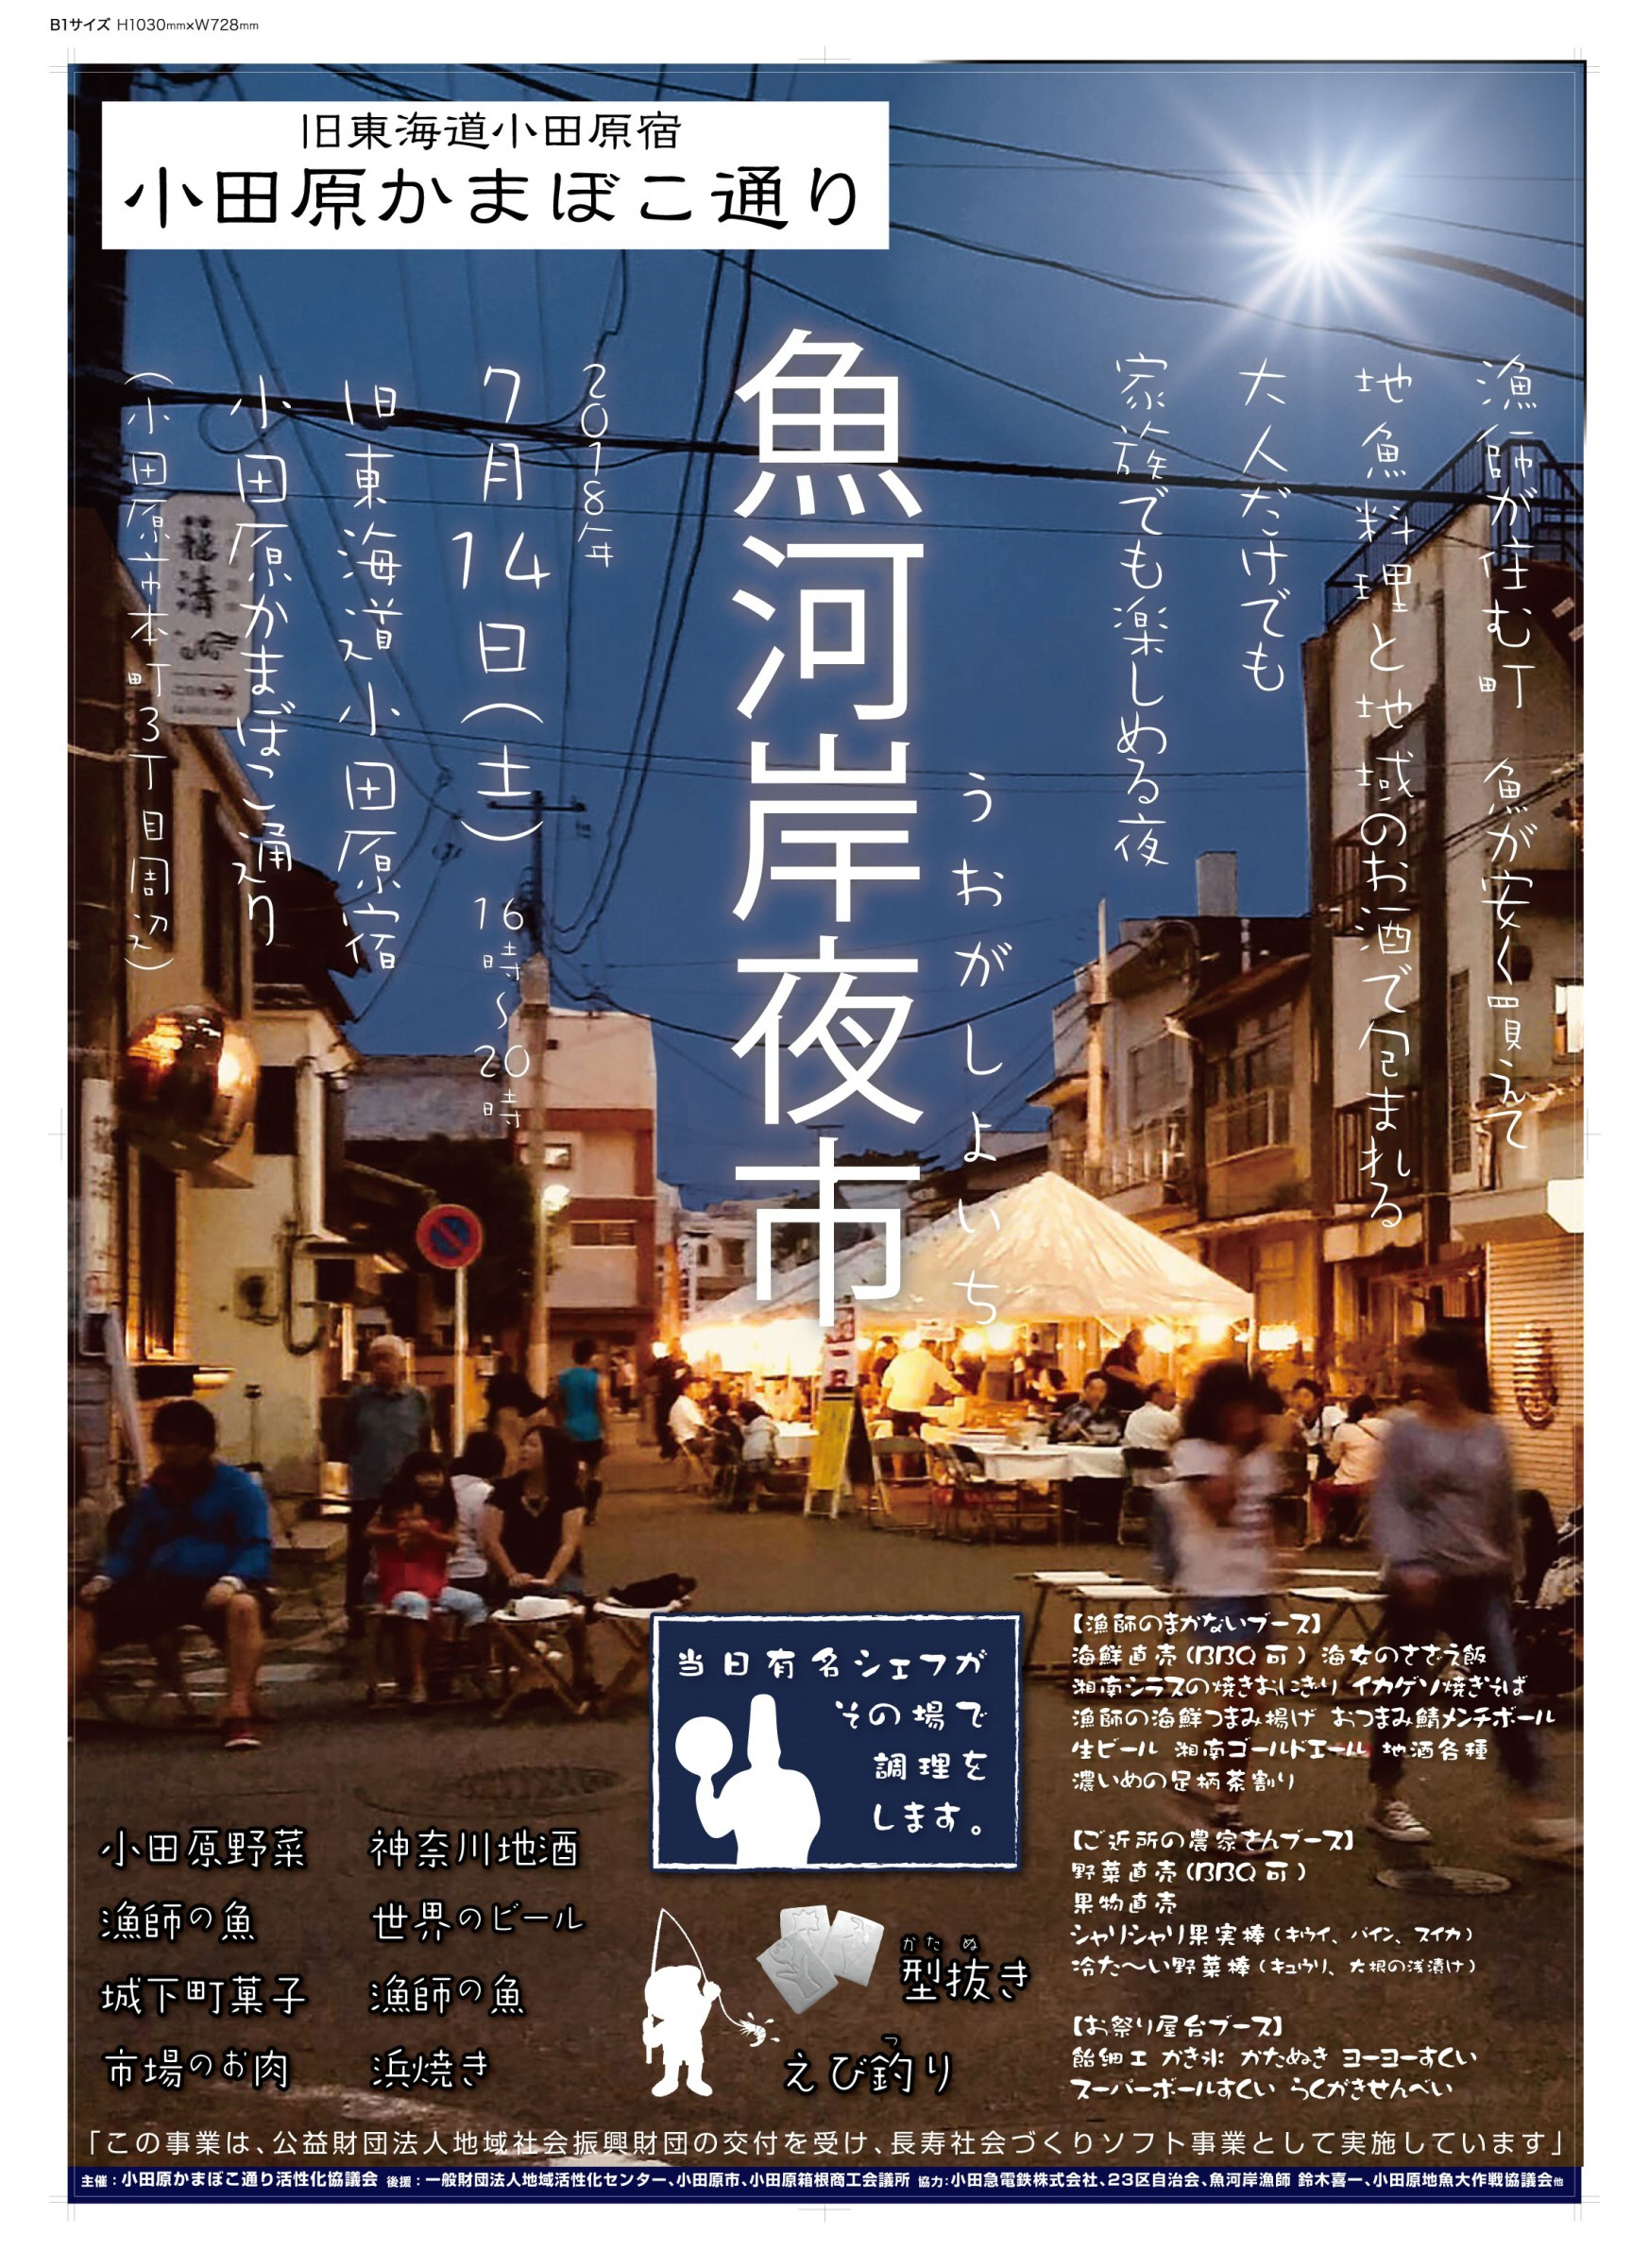 Riverside fish market night market poster